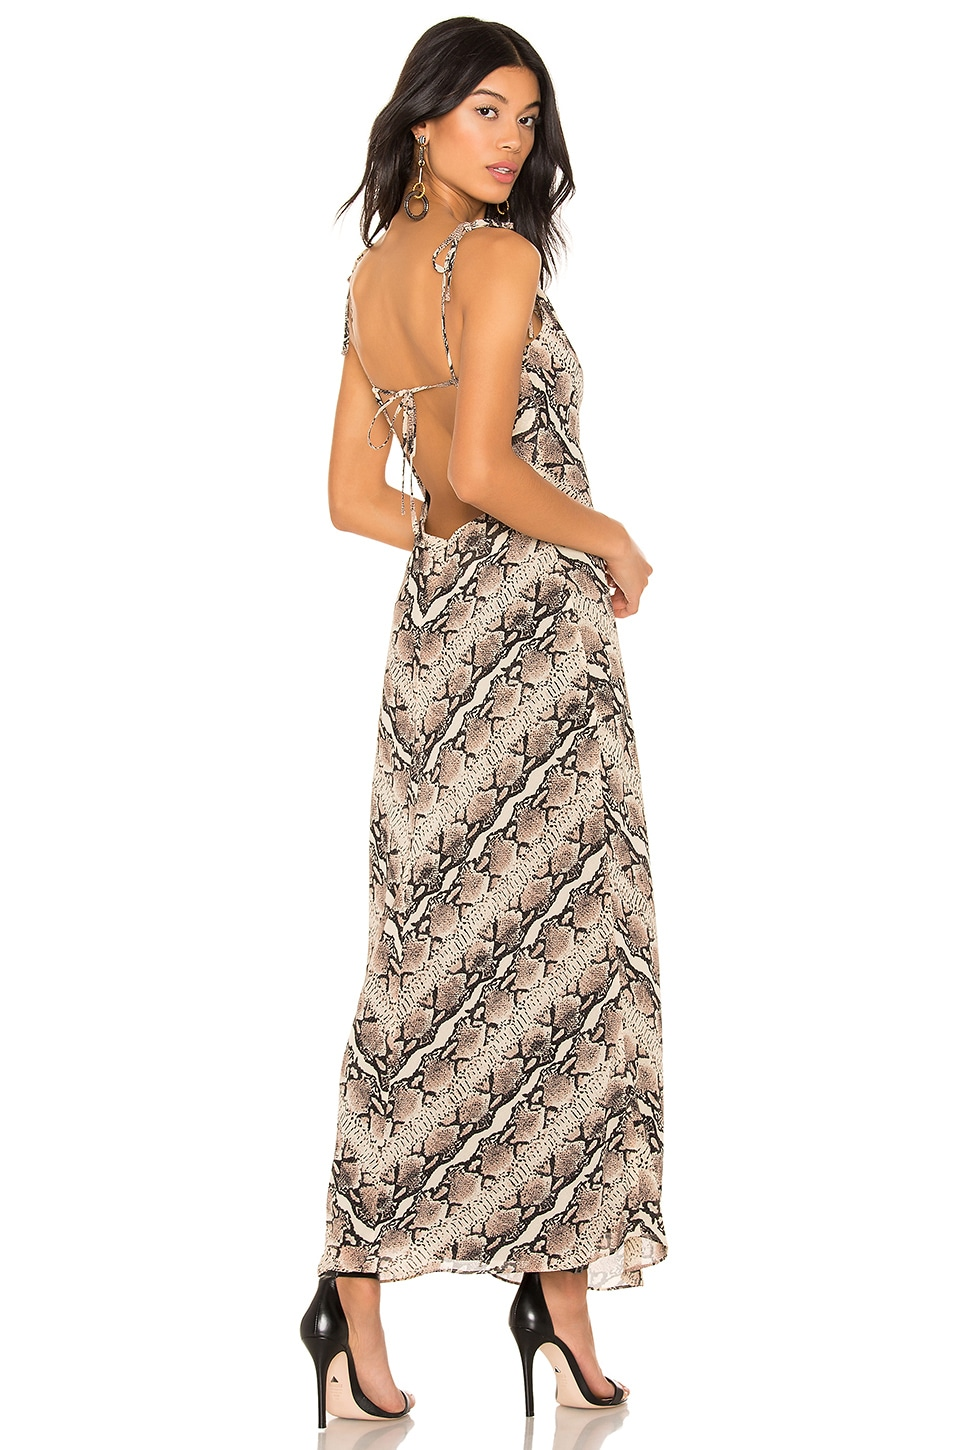 LPA Cowl Dress in Tan Snake